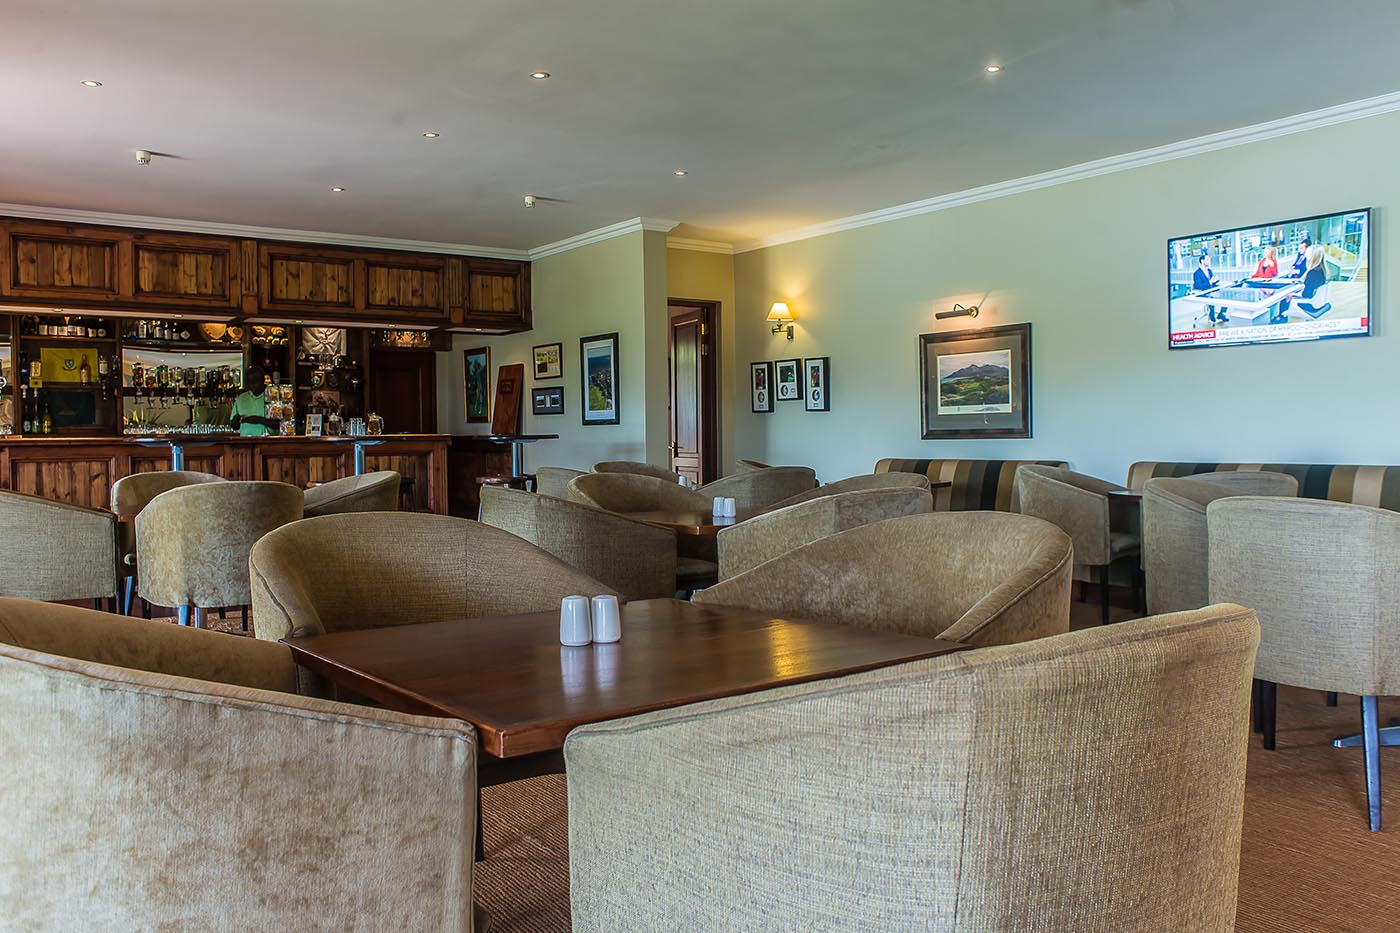 gowrie-club-house-gallery-golf-lodge-property-housing-development-kzn-luxury-country-lifestyle